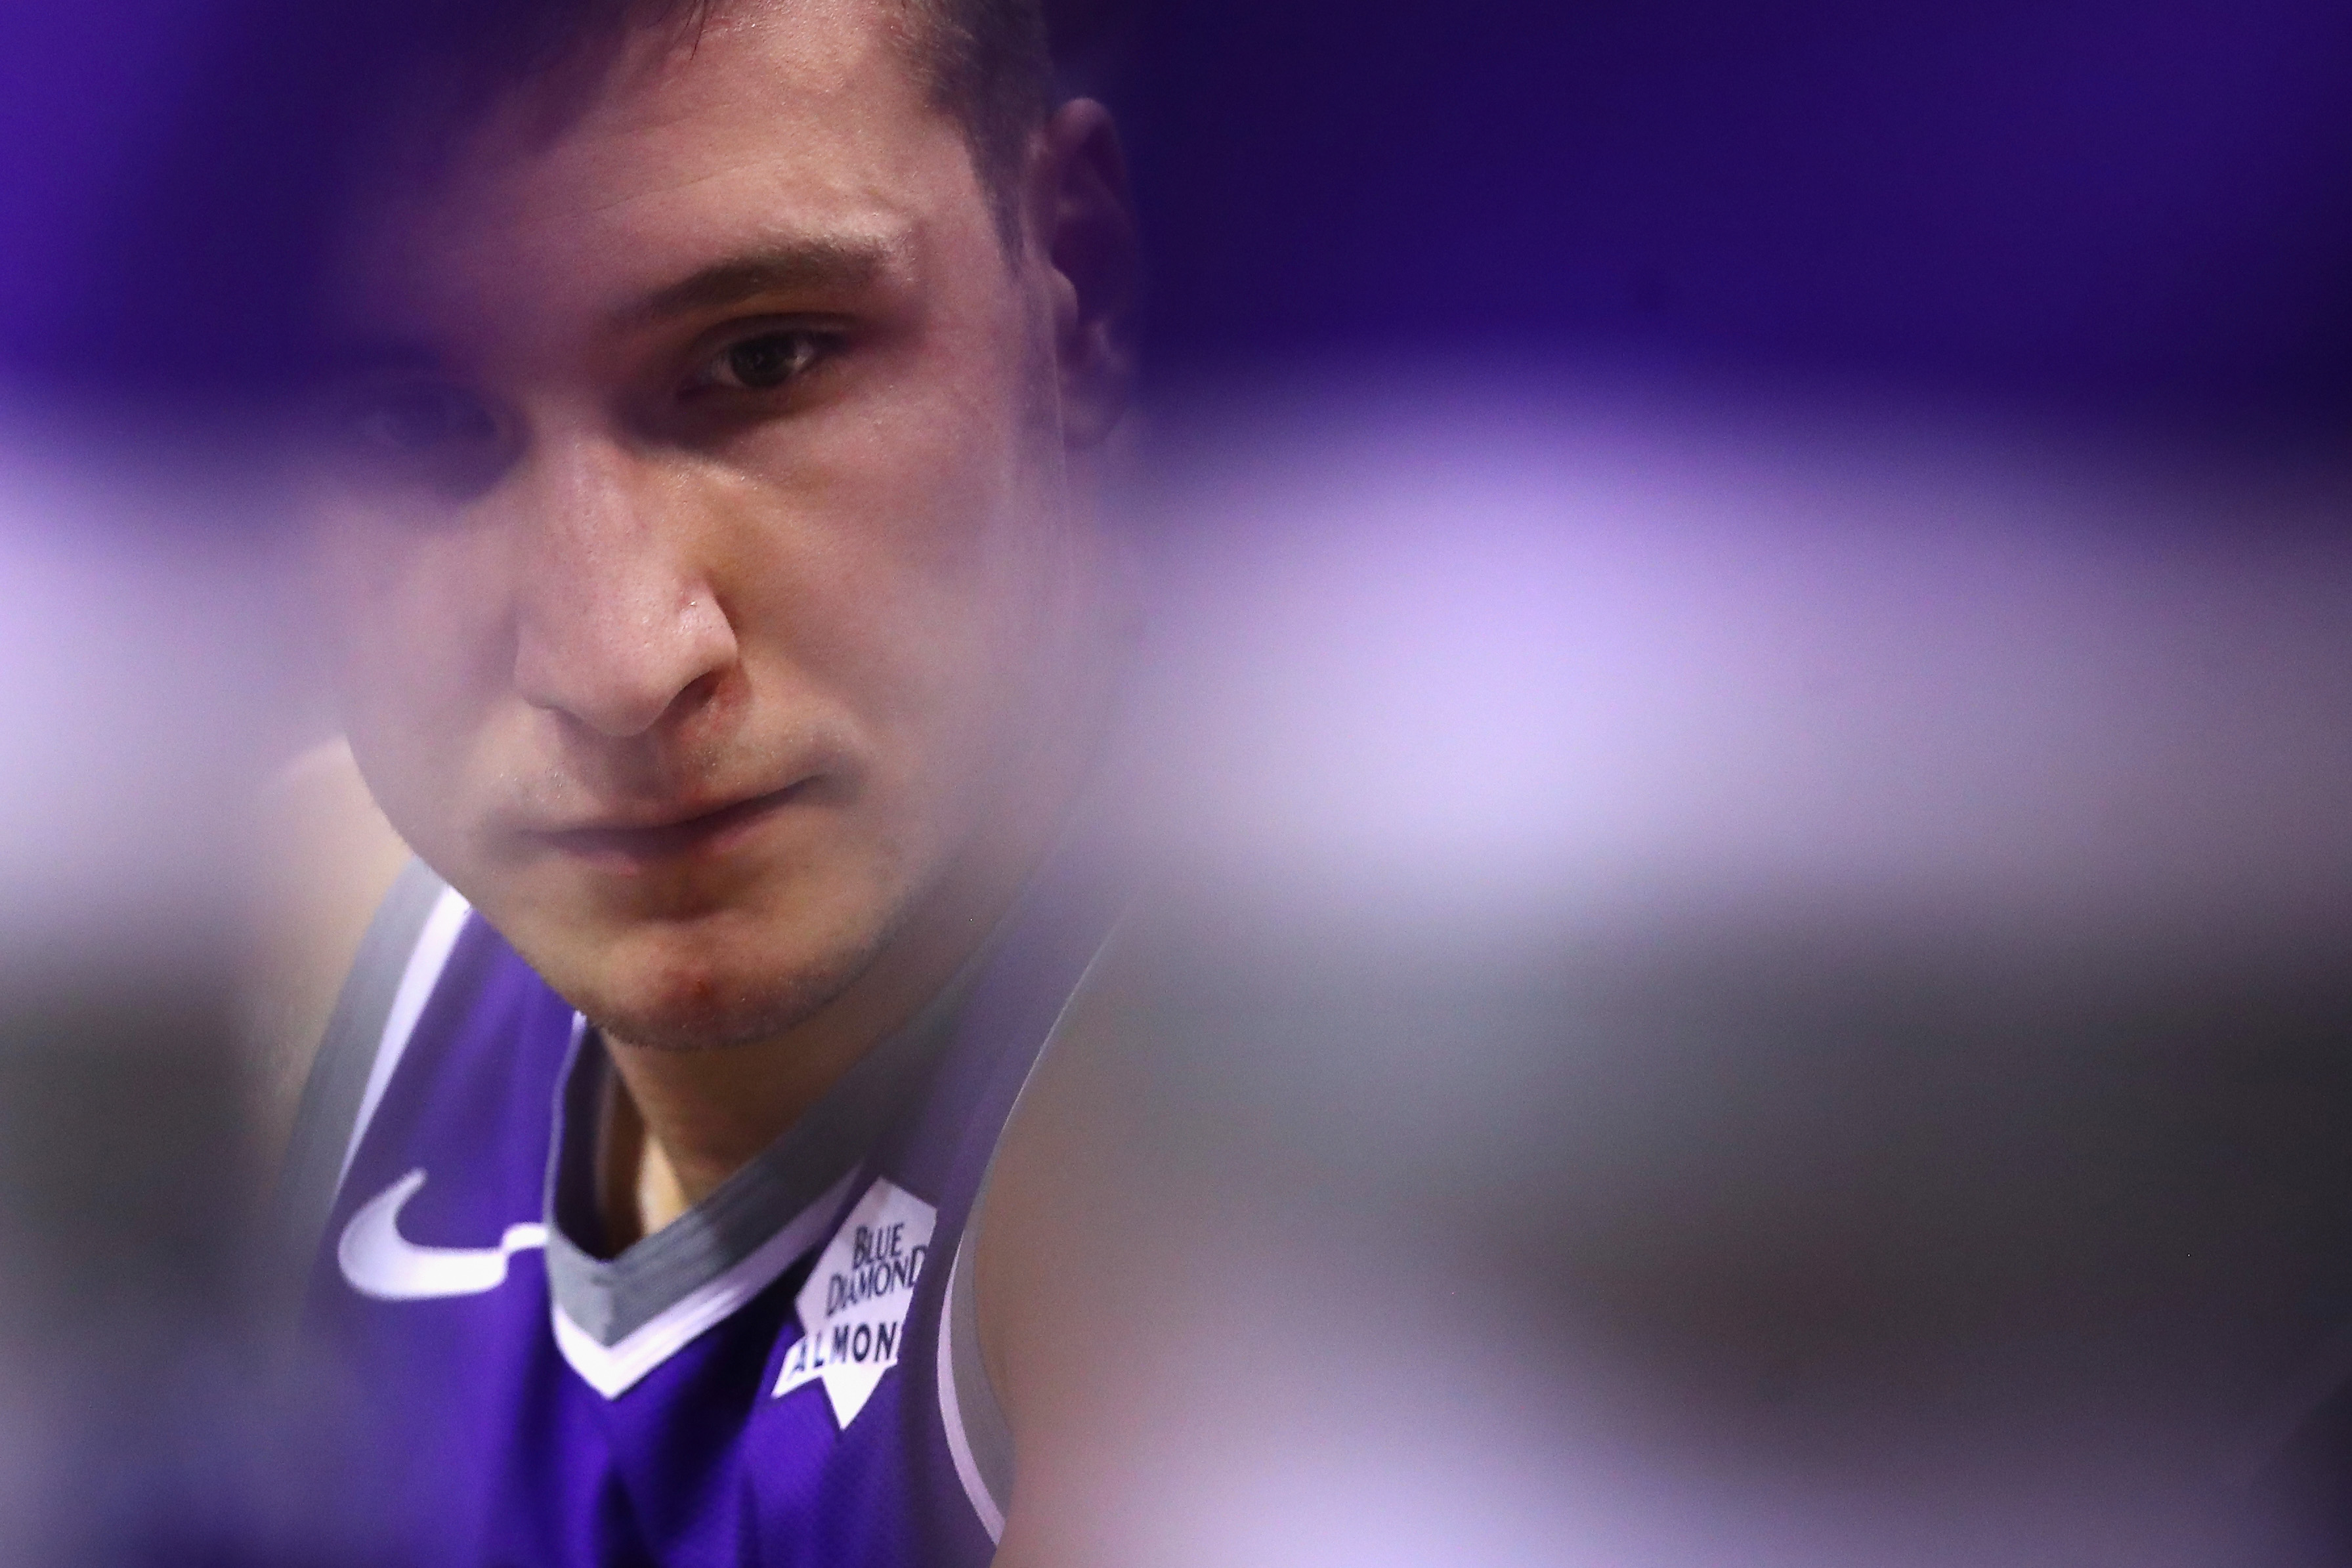 The face of Bogdan Bogdanovic.